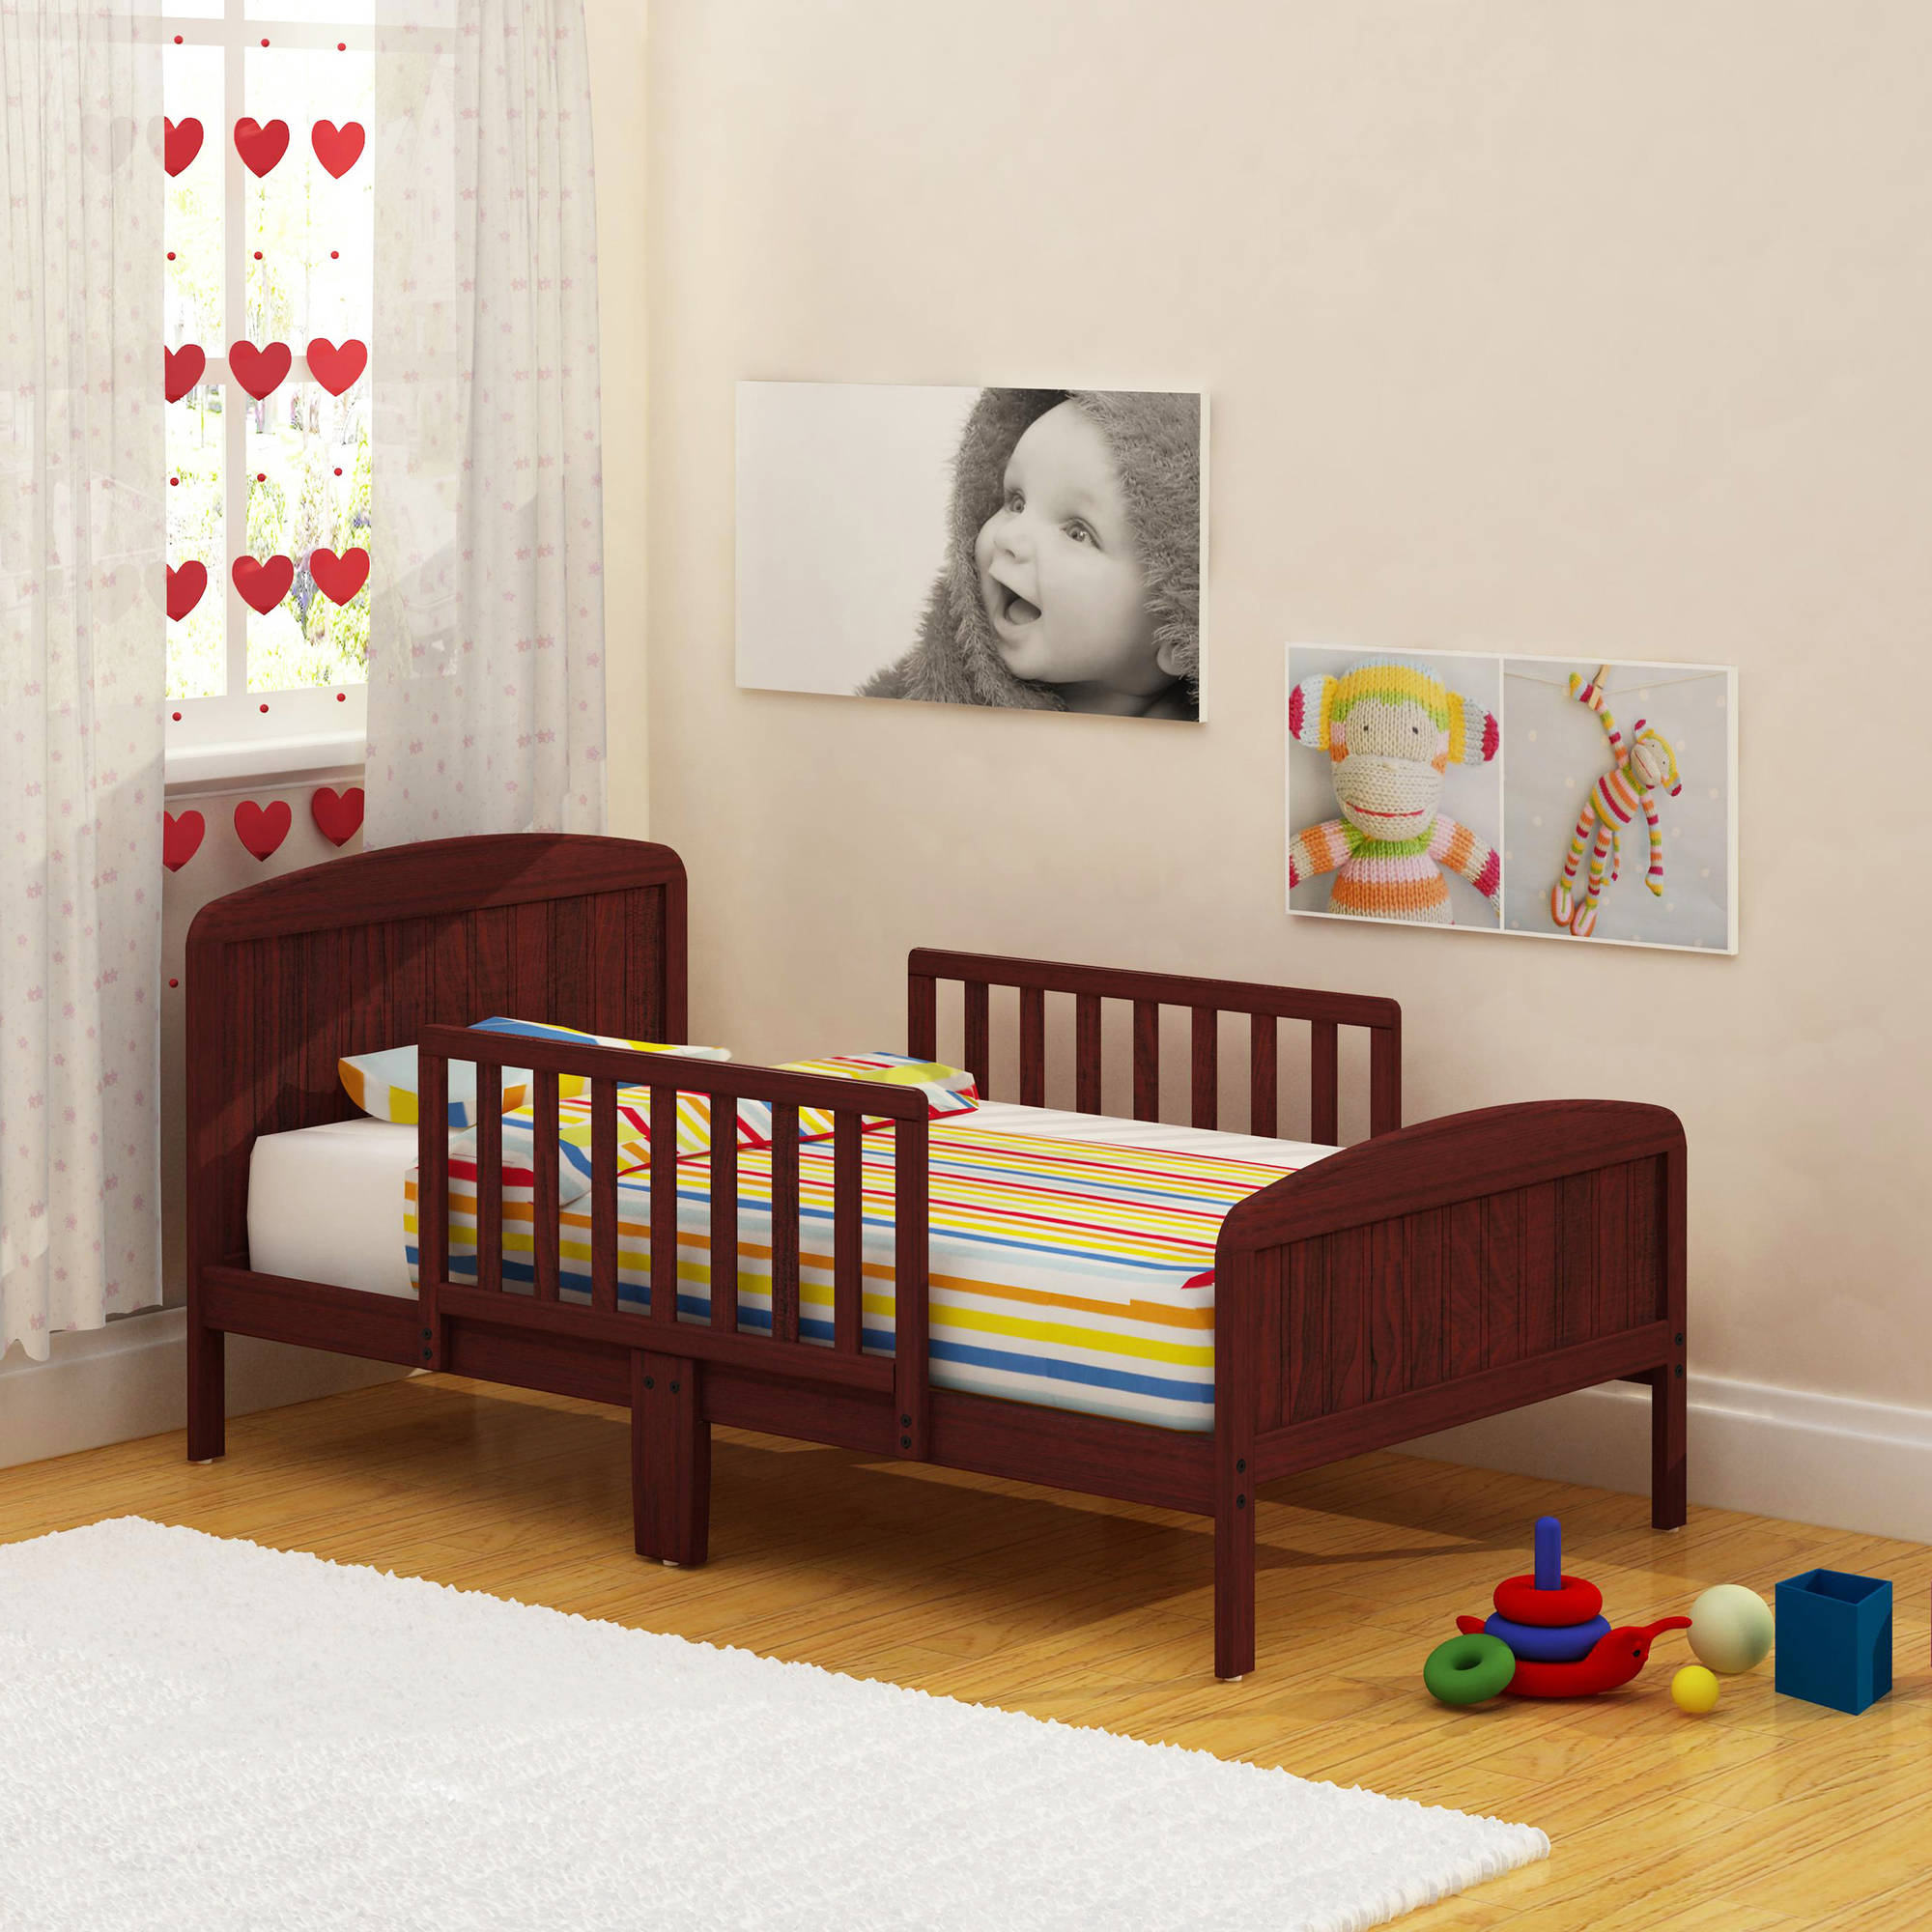 Sleeping places for little rascals with a lot of fun: Beds for 4-years-old